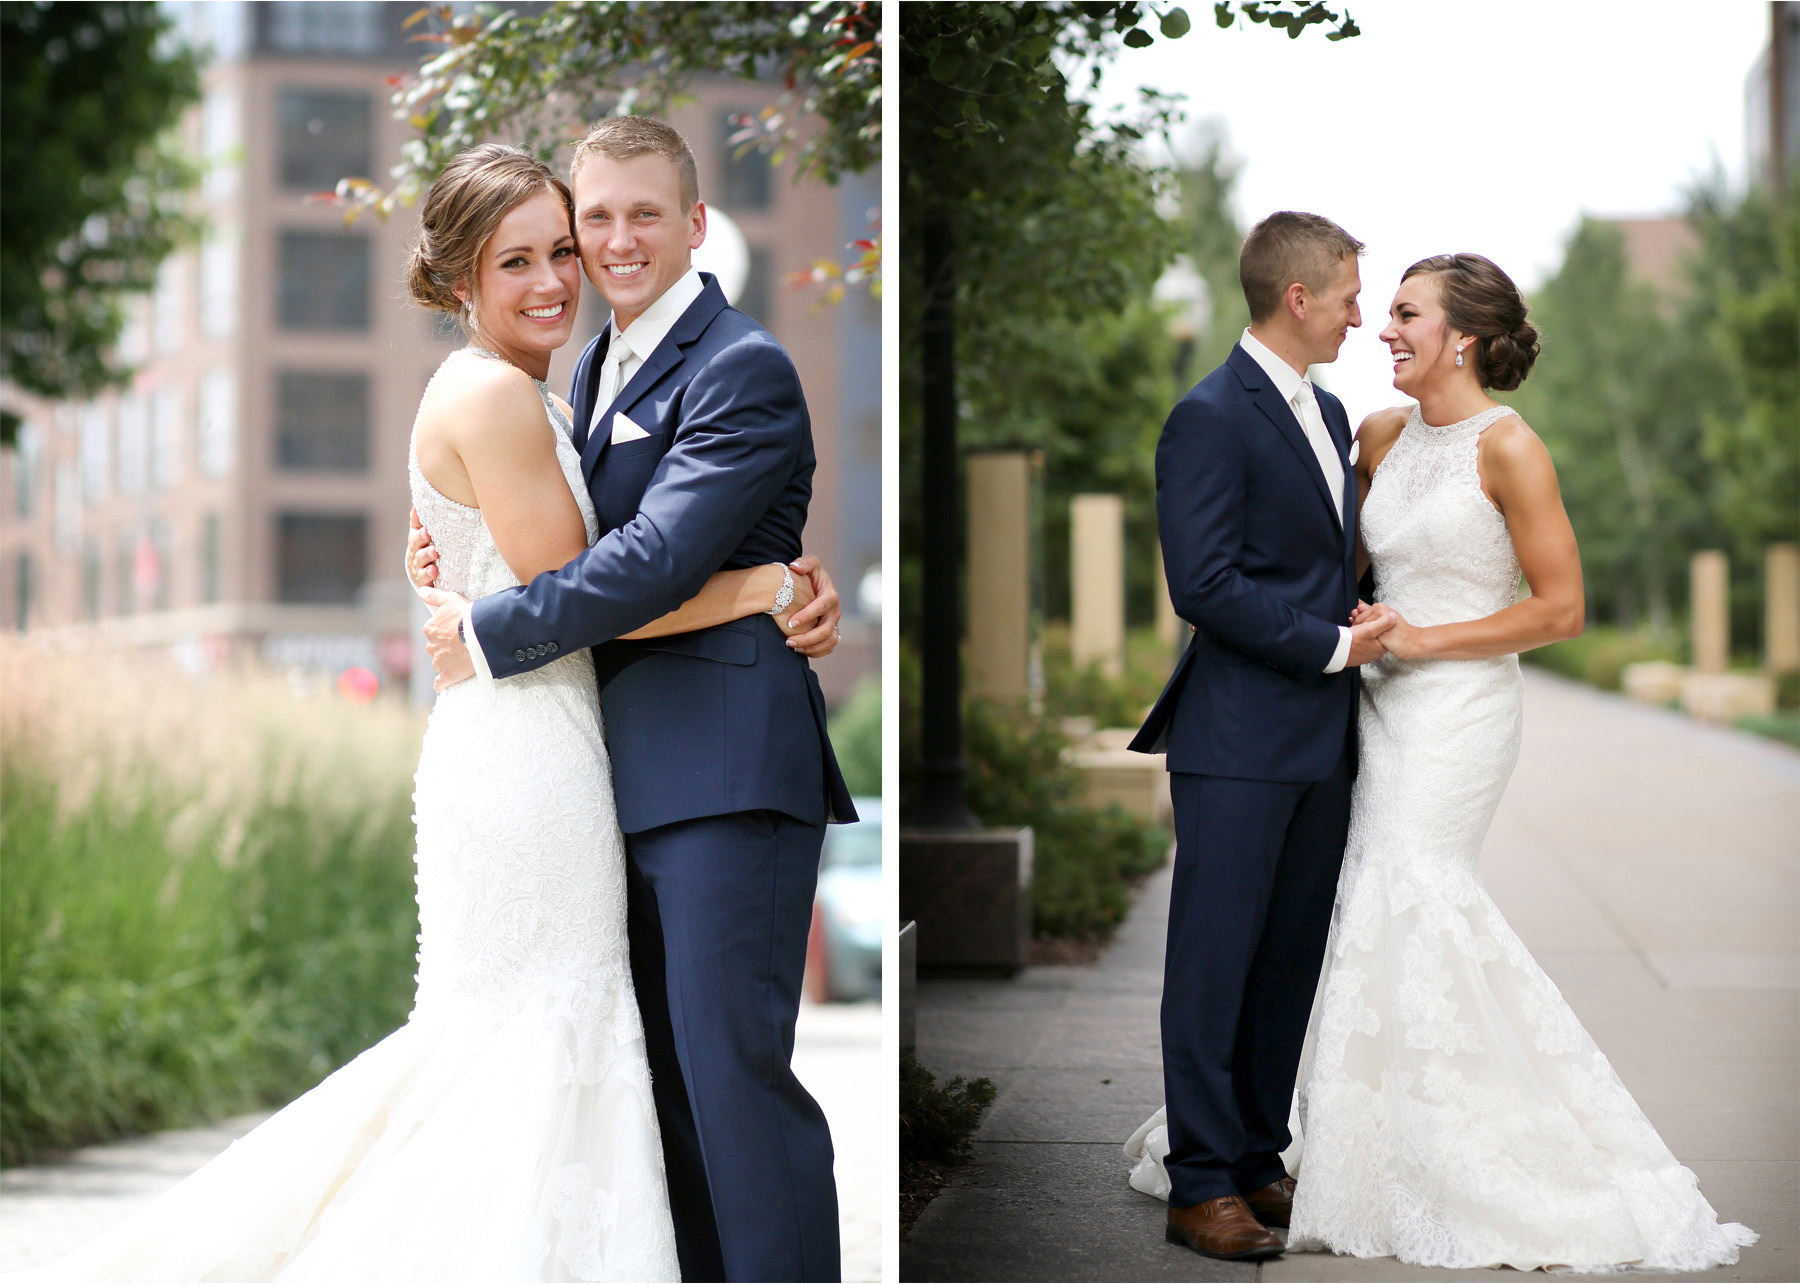 05-Minneapolis-Minnesota-Wedding-Photography-by-Vick-Photography-First-Look-Brianna-and-Bryce.jpg